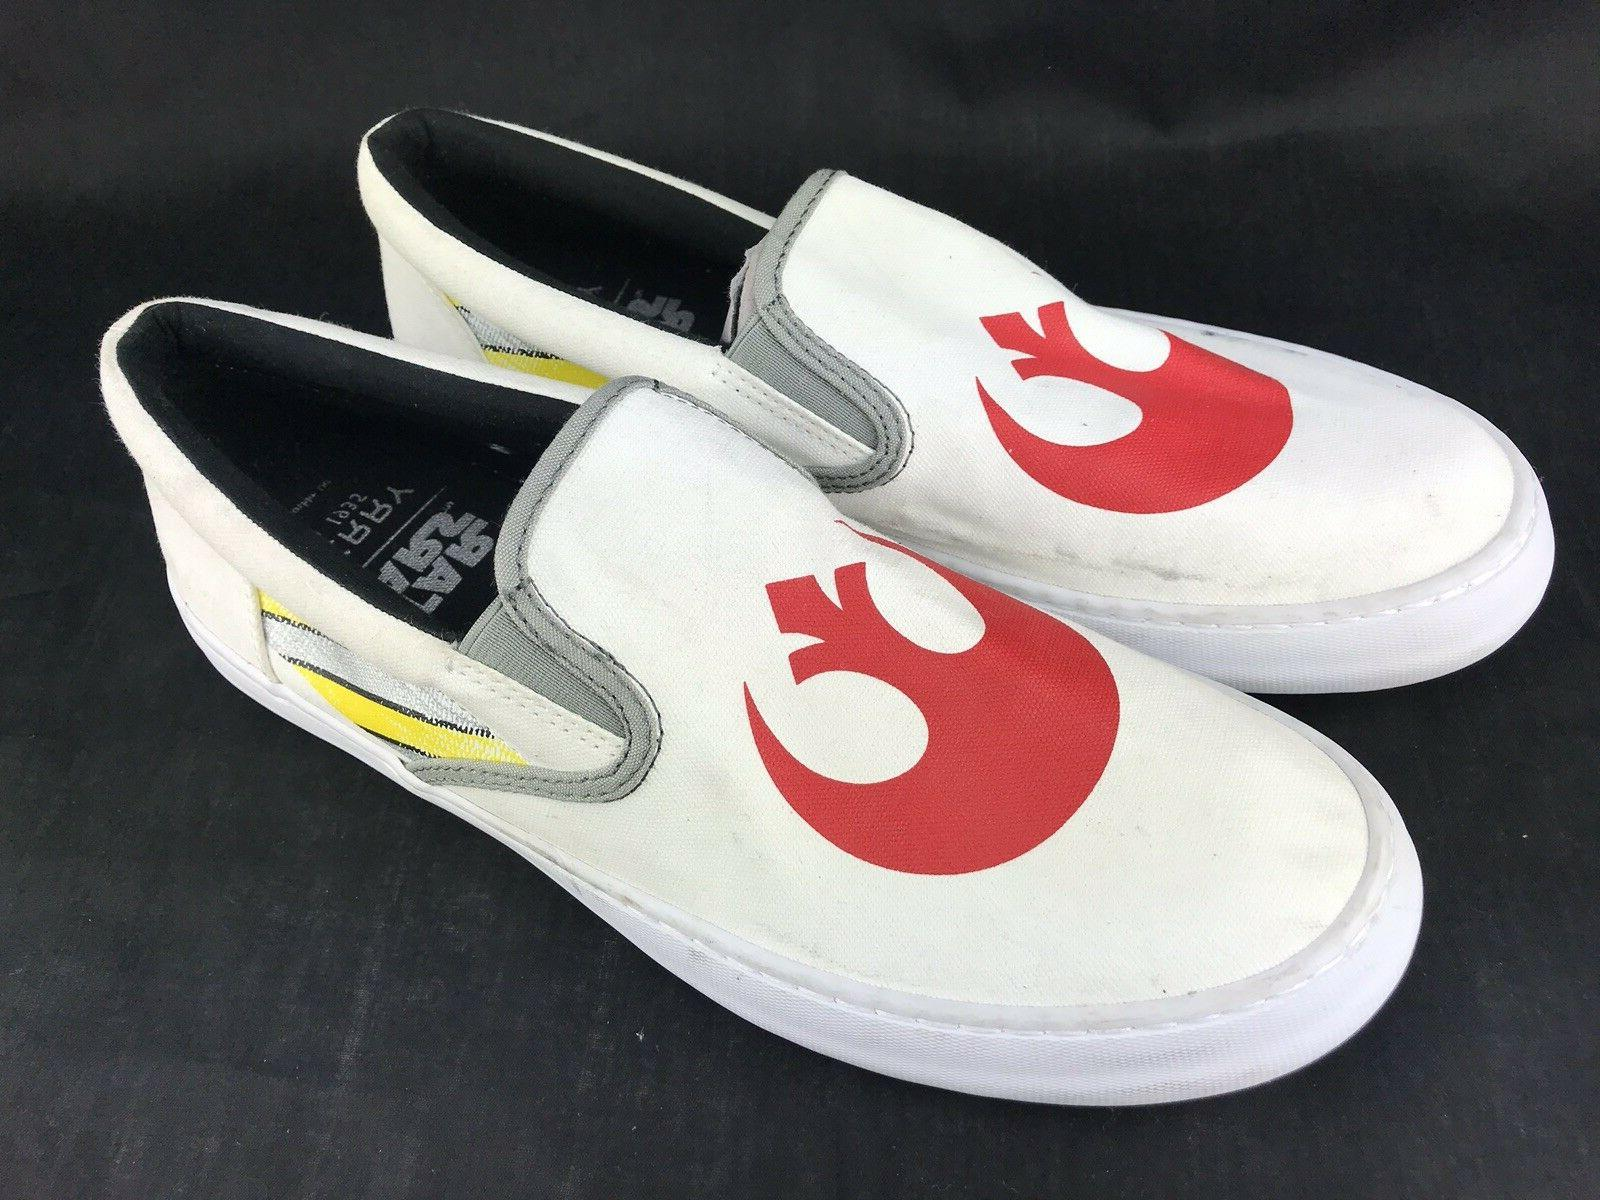 Sperry Boat 10 Star Wars Canvas Loafers Sneaker